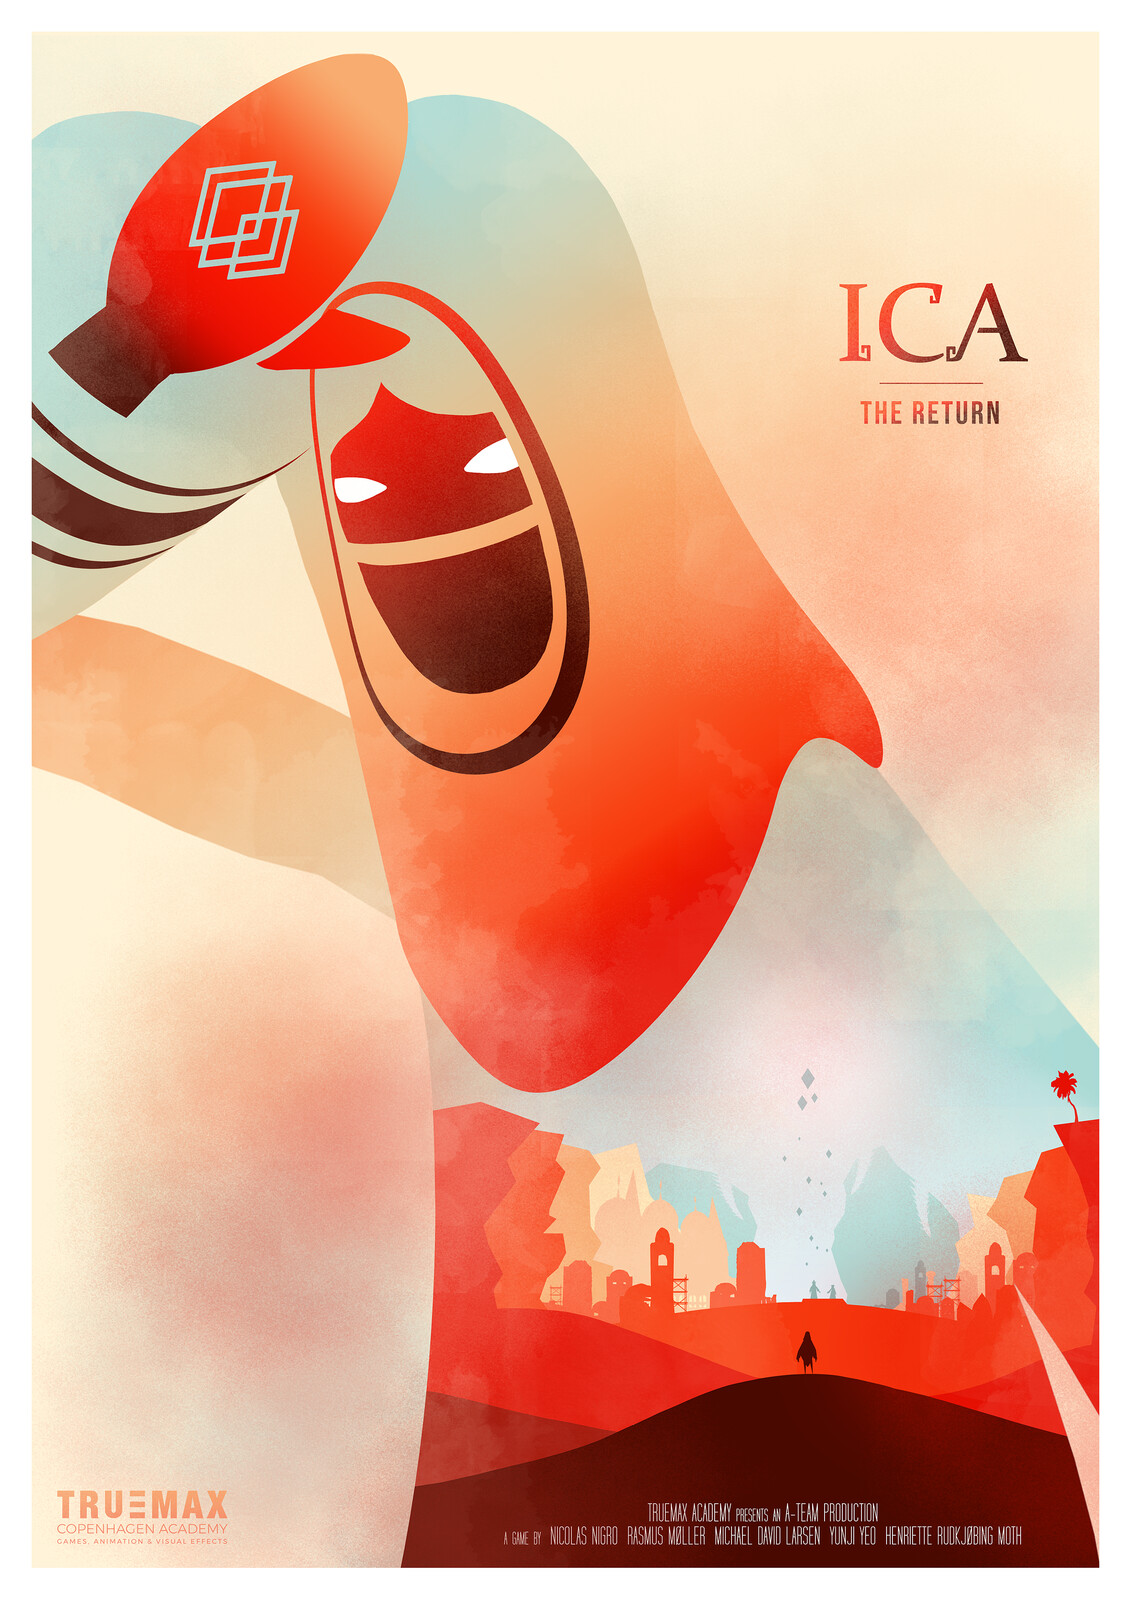 Final Poster for Ica. Made in Photoshop.